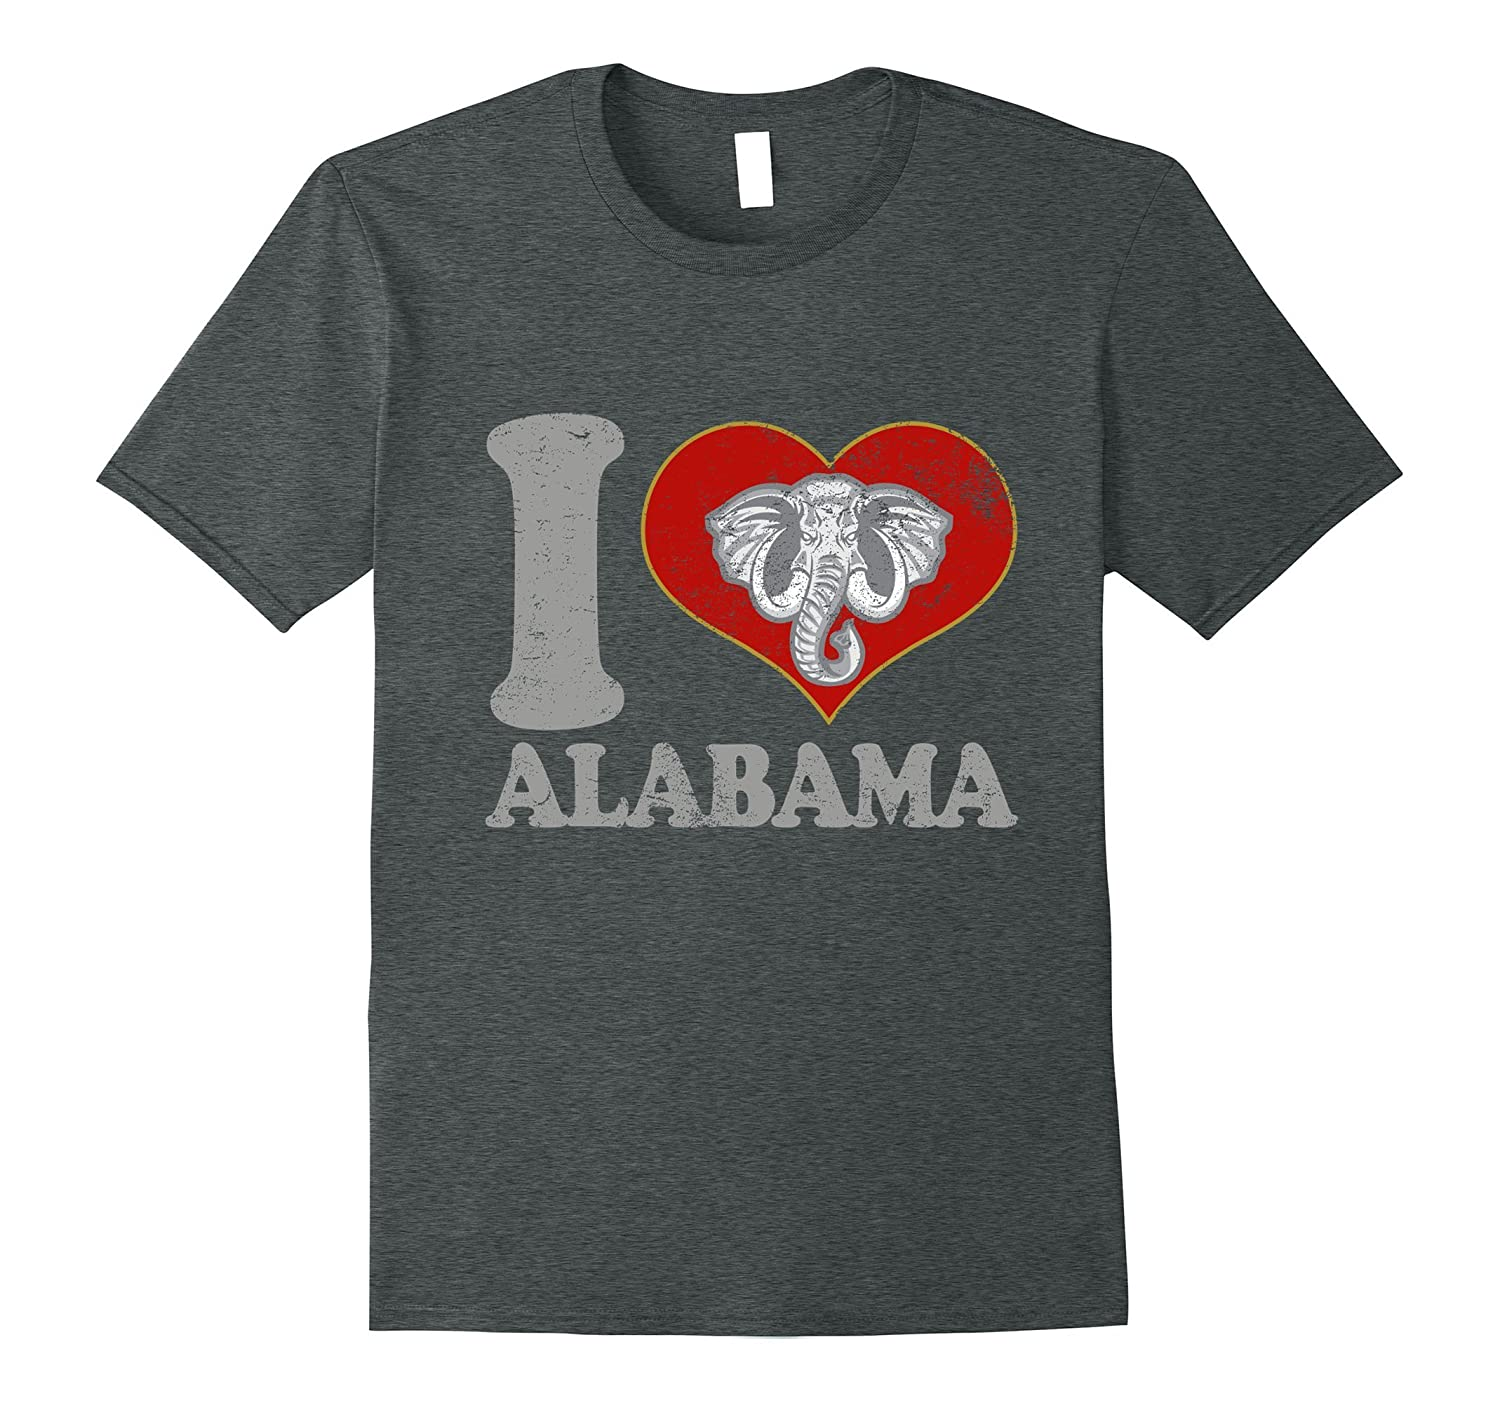 Alabama T Shirt Fan Tee University Men Football Women Youth-FL